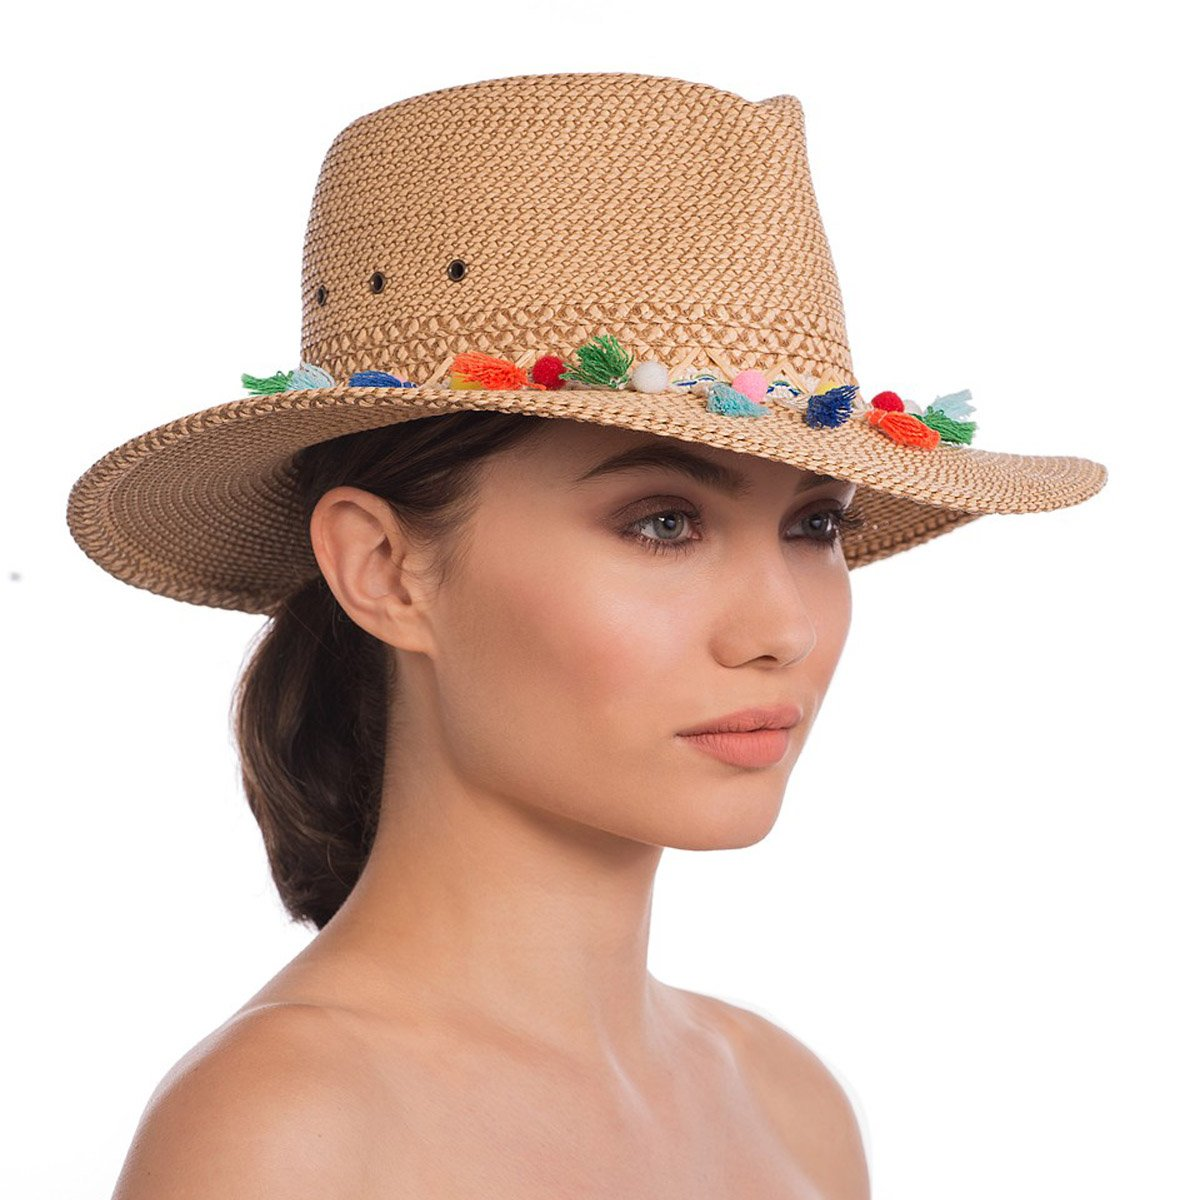 Eric Javits Luxury Fashion Designer Women's Headwear Hat - Bahia - Peanut Mix